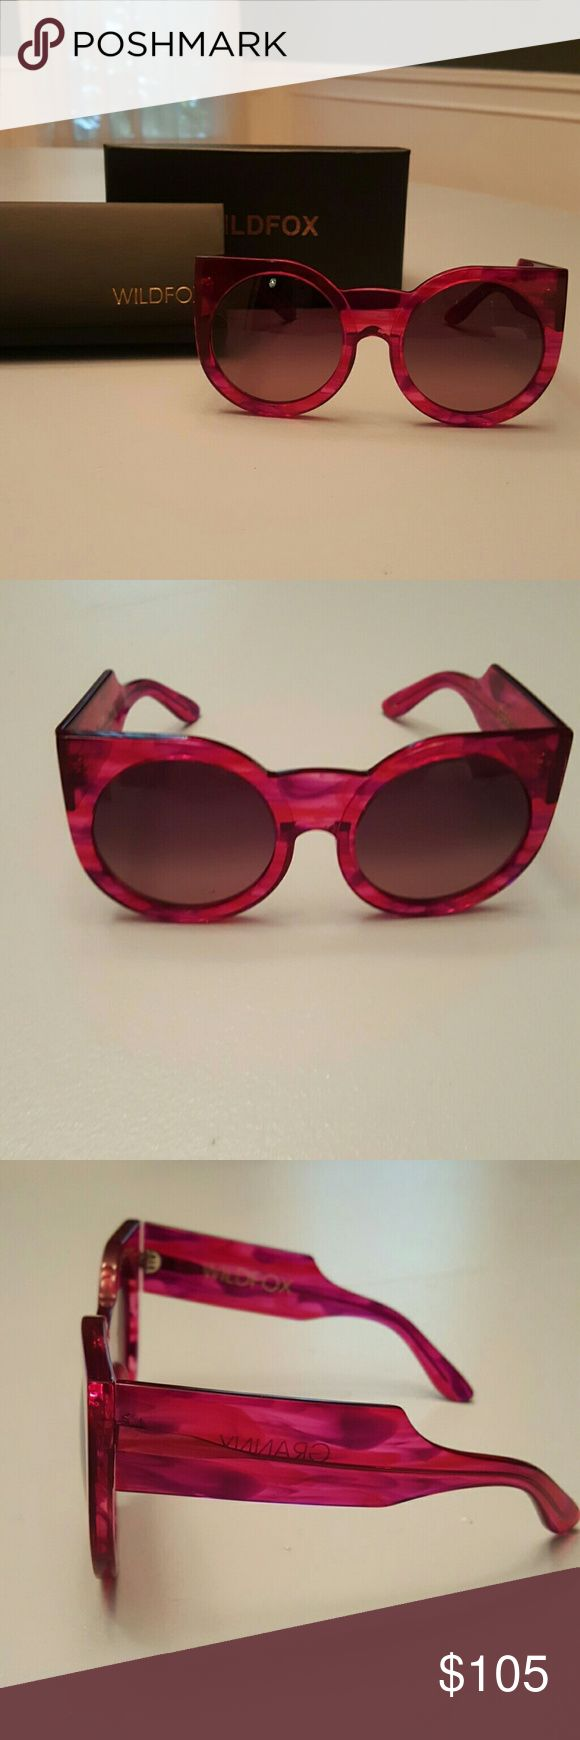 Wildfox Granny Cat Eye Sunglasses Beautiful and brand new Wildfox sunglasses. Depending on the light, they can look deep hot pink, burgundy, purple and all sorts of colors in that range. The style is Granny but with a cute cat eye twist. Oversized style. Perfect condition.  Very hot for Summer!! :) Wildfox Accessories Sunglasses